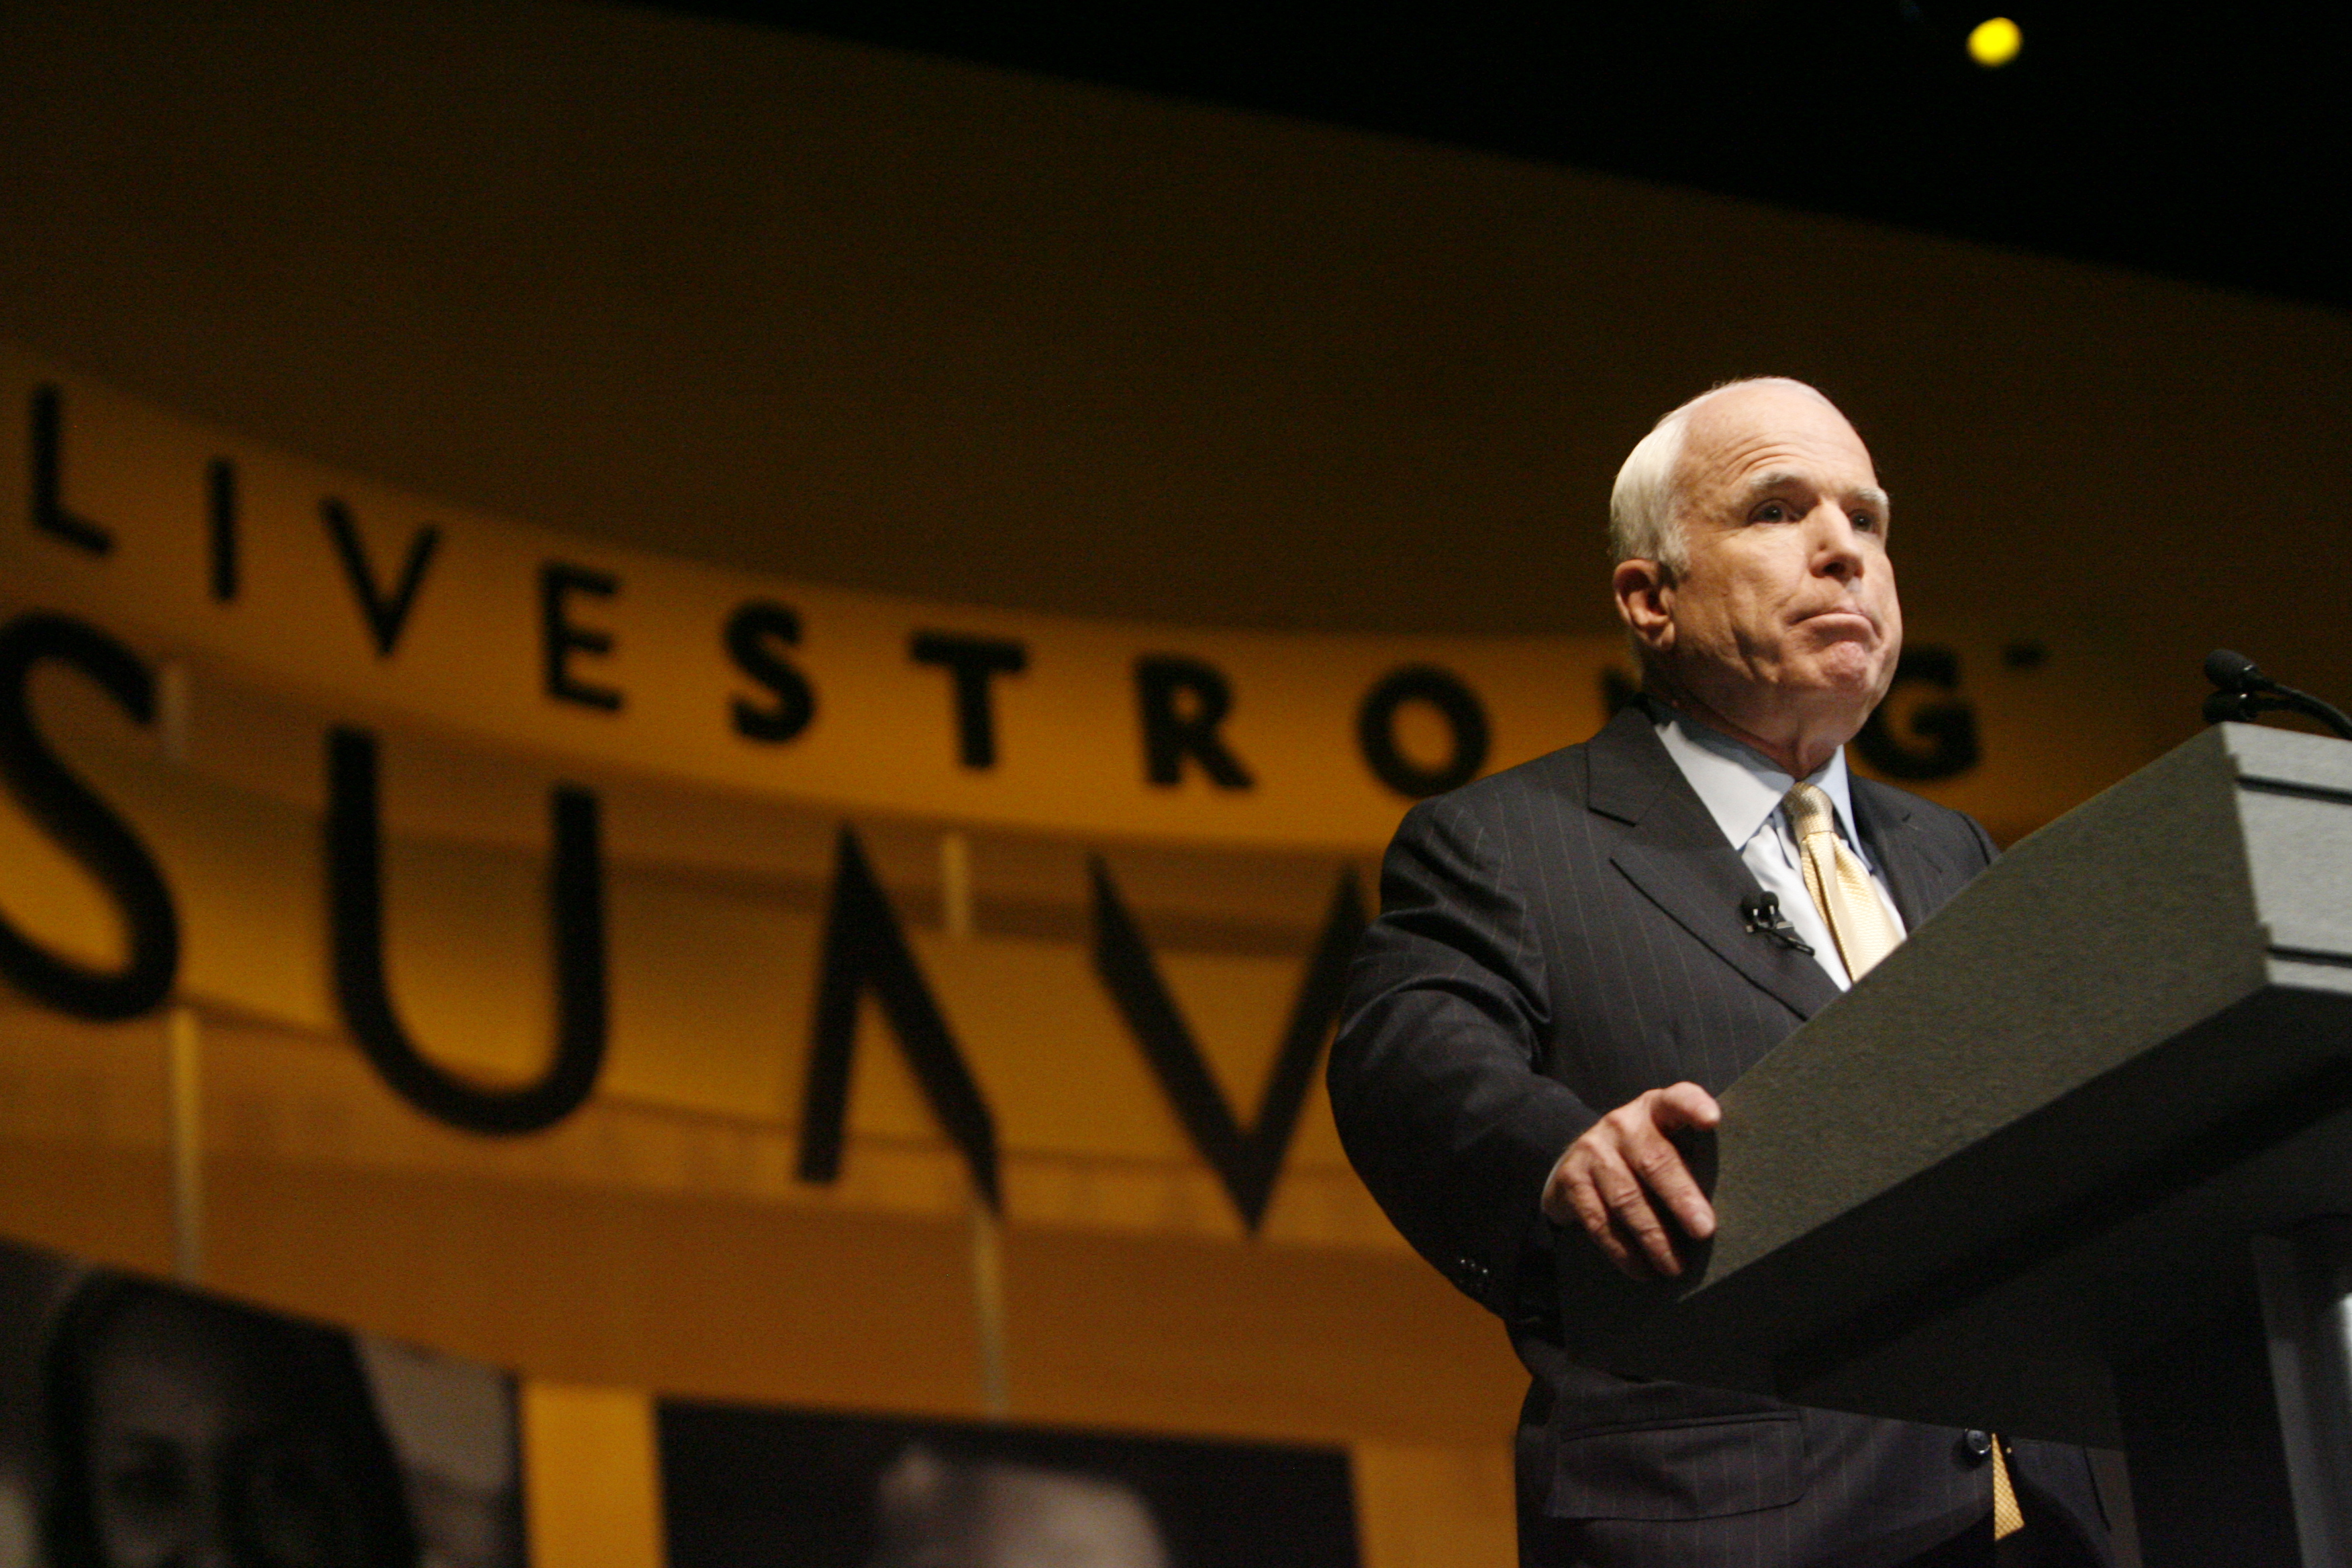 Senator McCain at Livestrong Summit